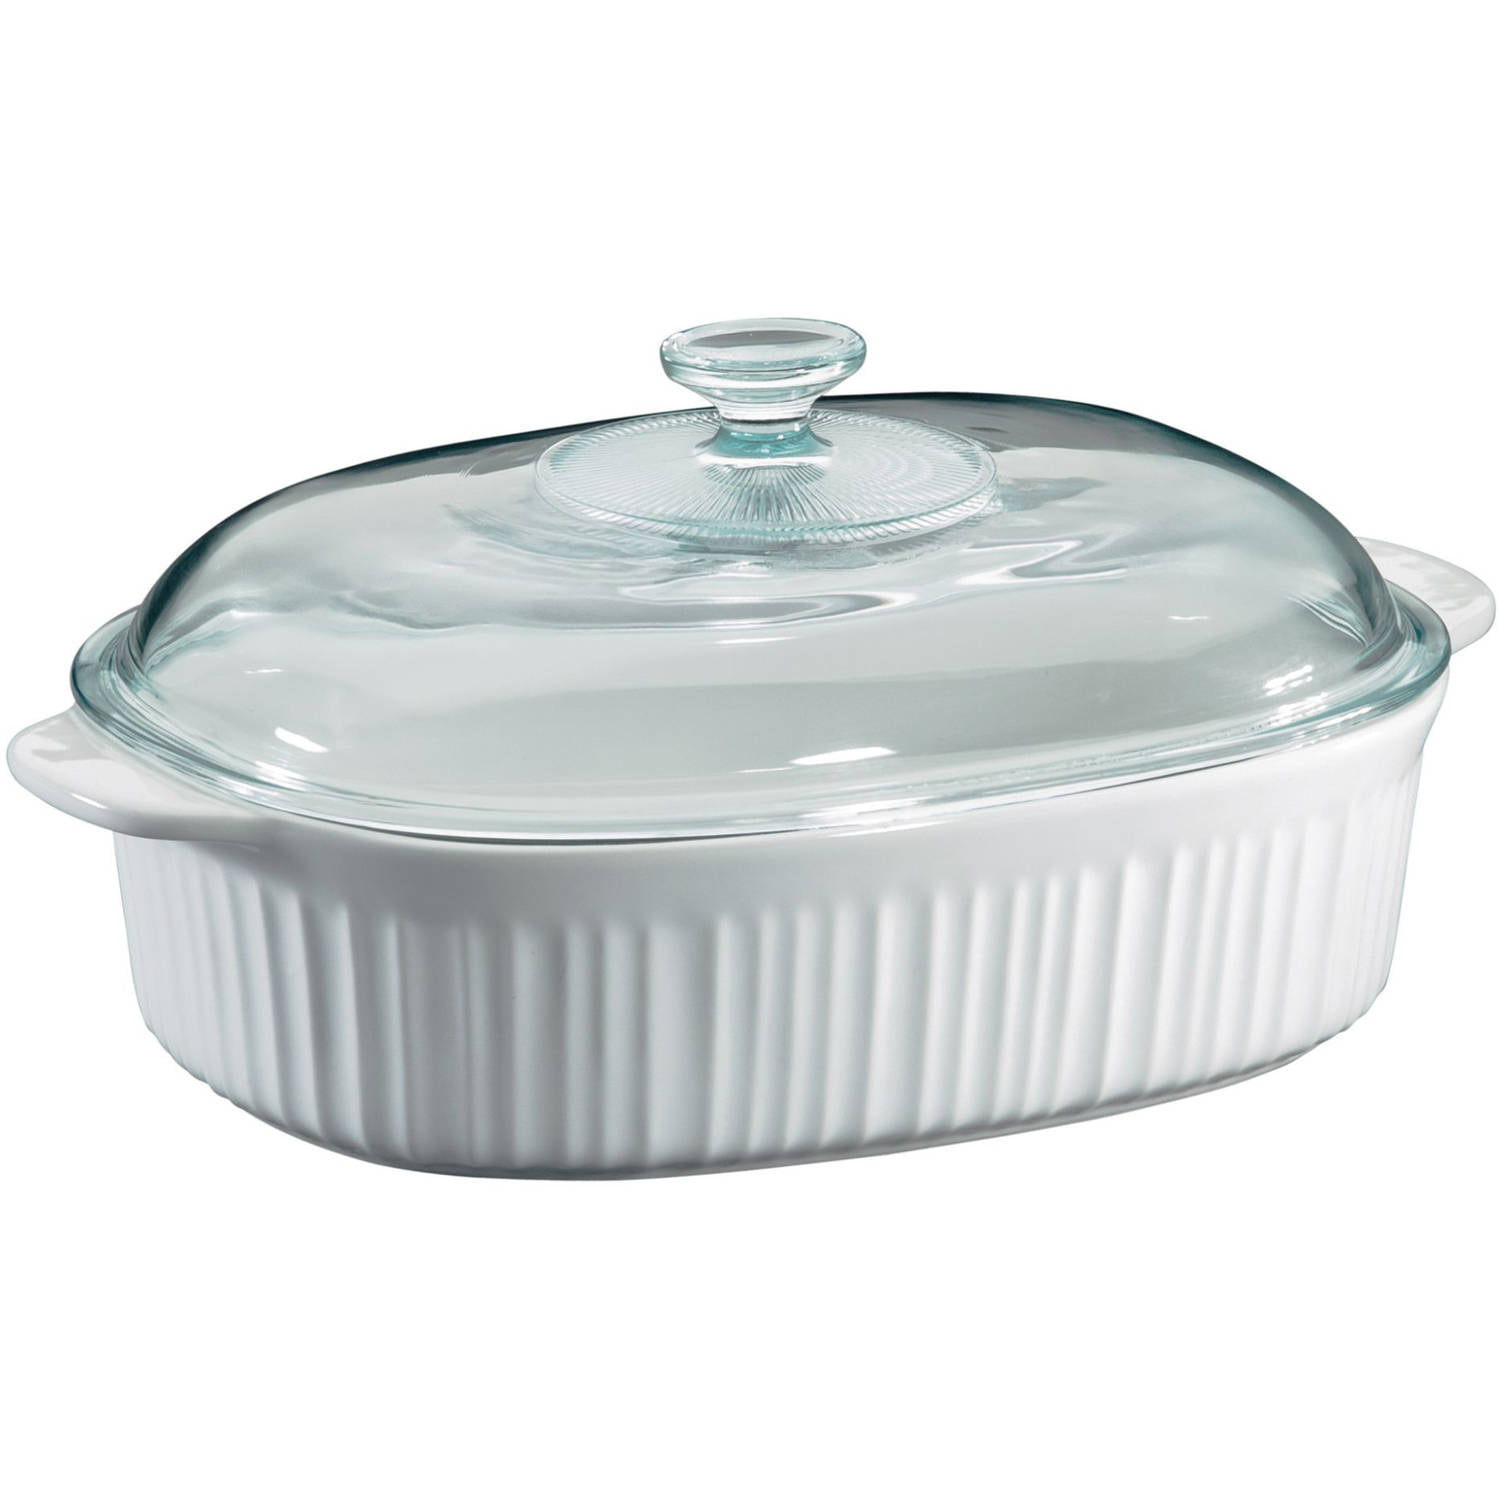 Corningware French White 4 Quart Oval Casserole With Glass